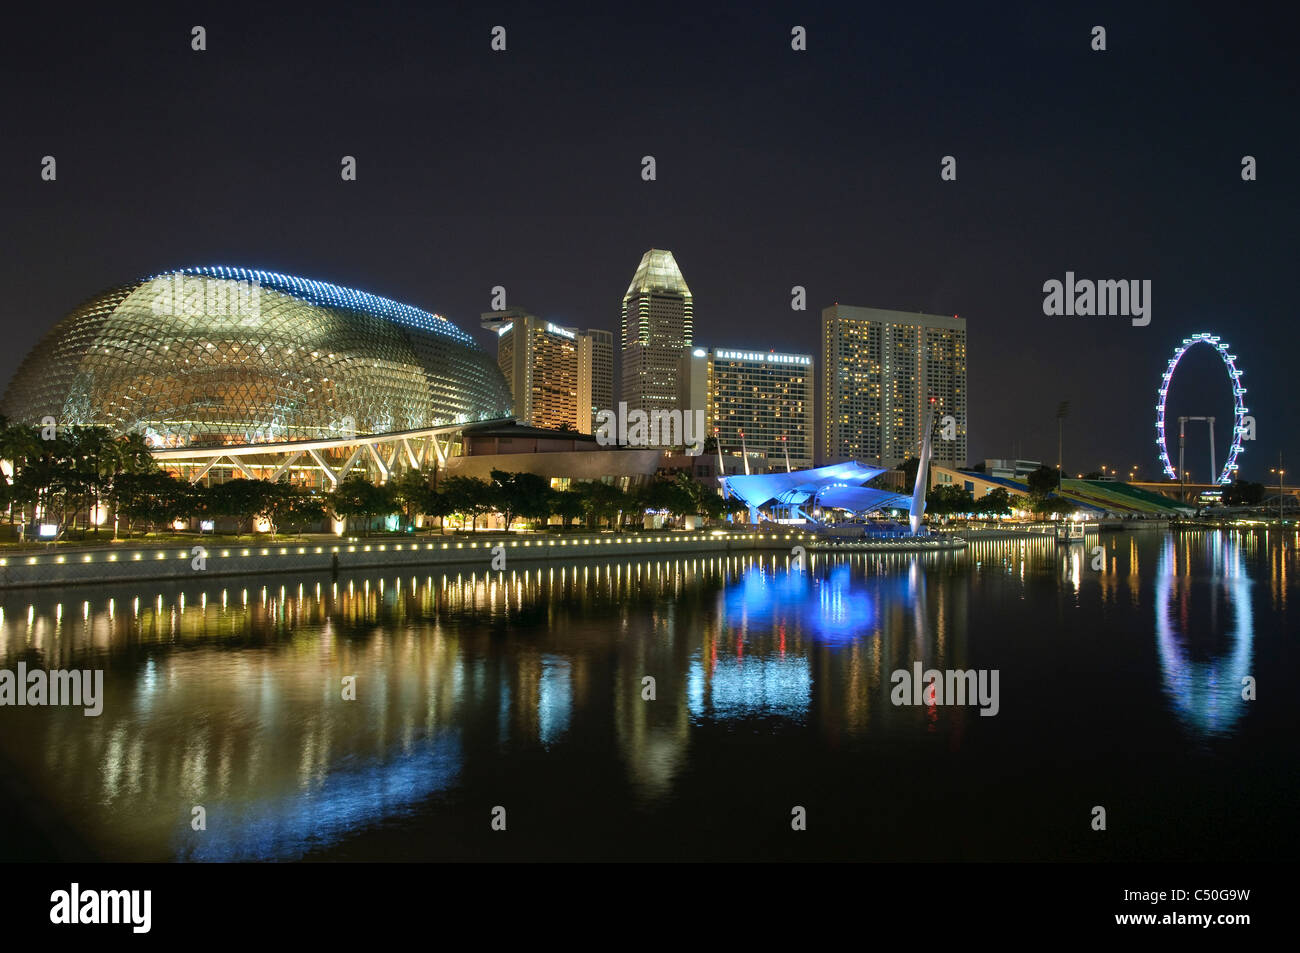 Esplanade Concert Hall at Marina Bay, skyline with Singapore Flyer, night, Singapore, Southeast Asia, Asia - Stock Image